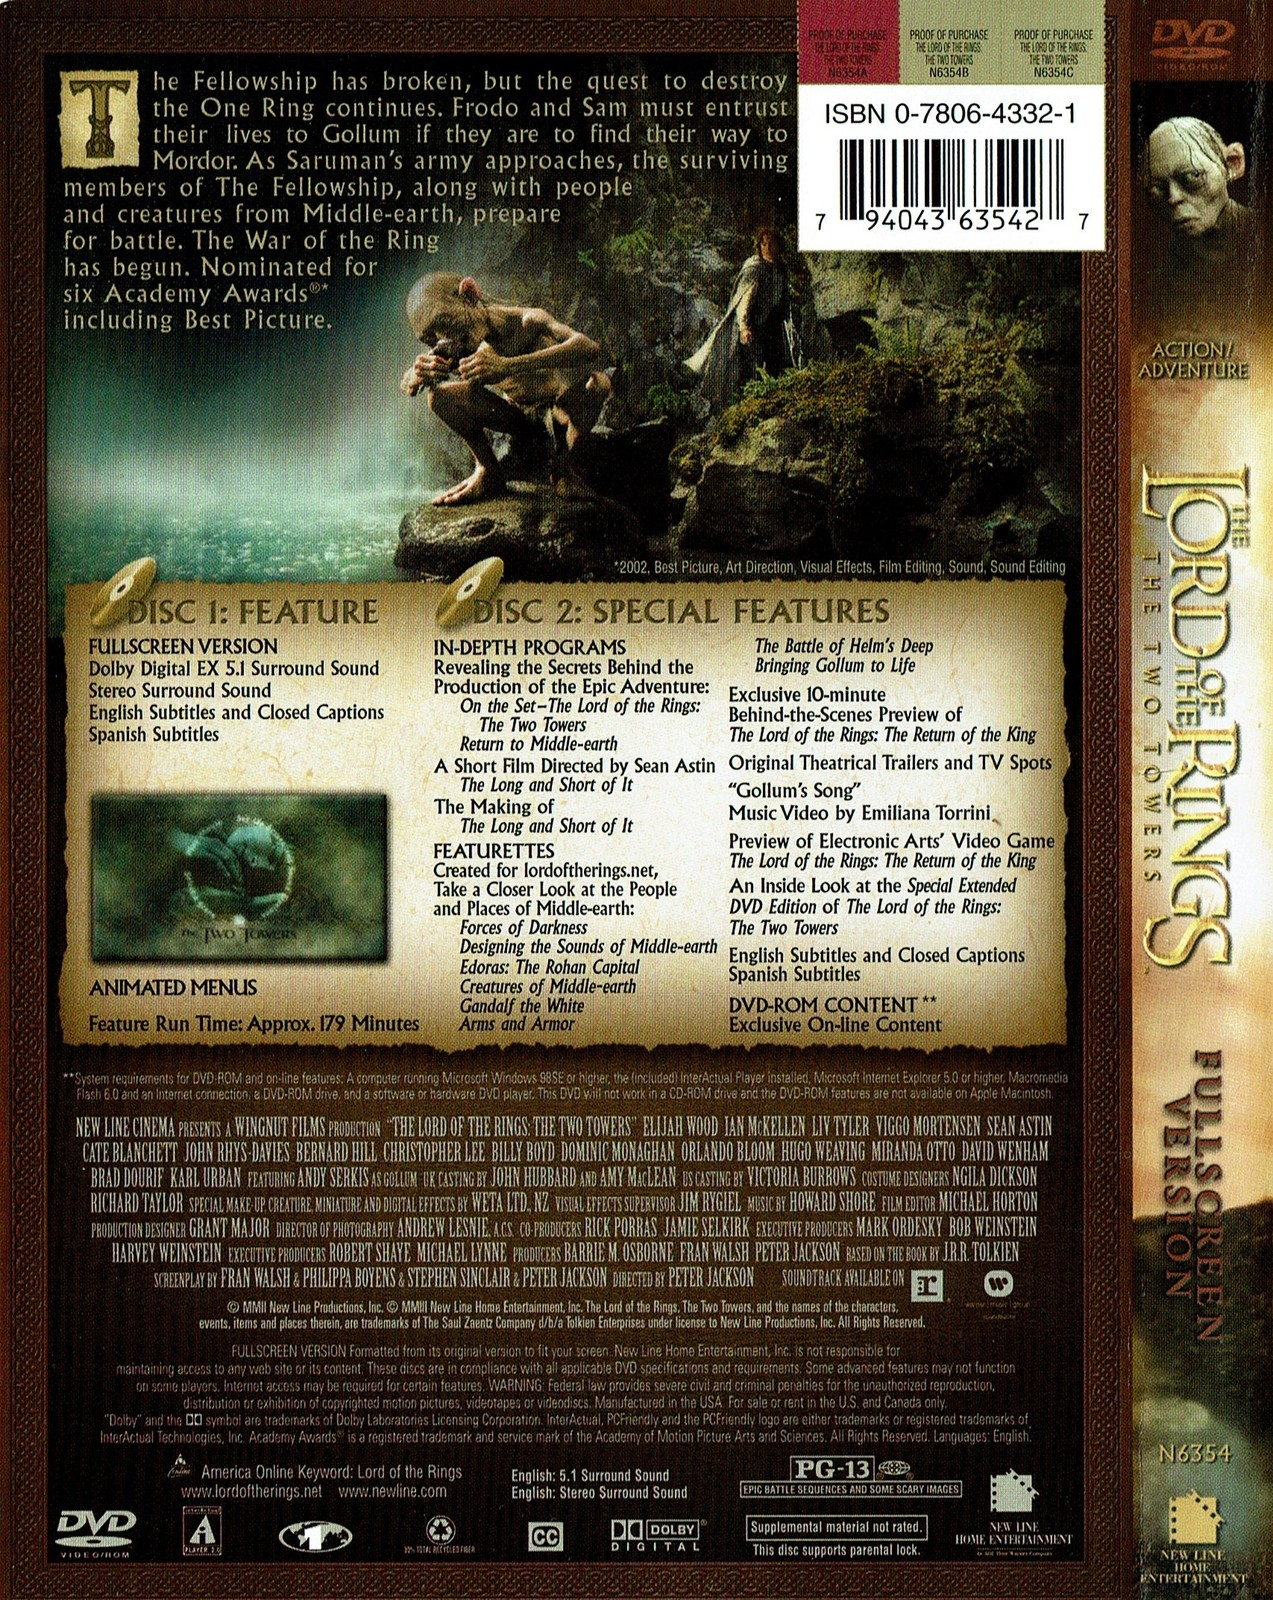 The Lord Of the Rings: The Two Towers, DVD 2003, Full Screen Edition